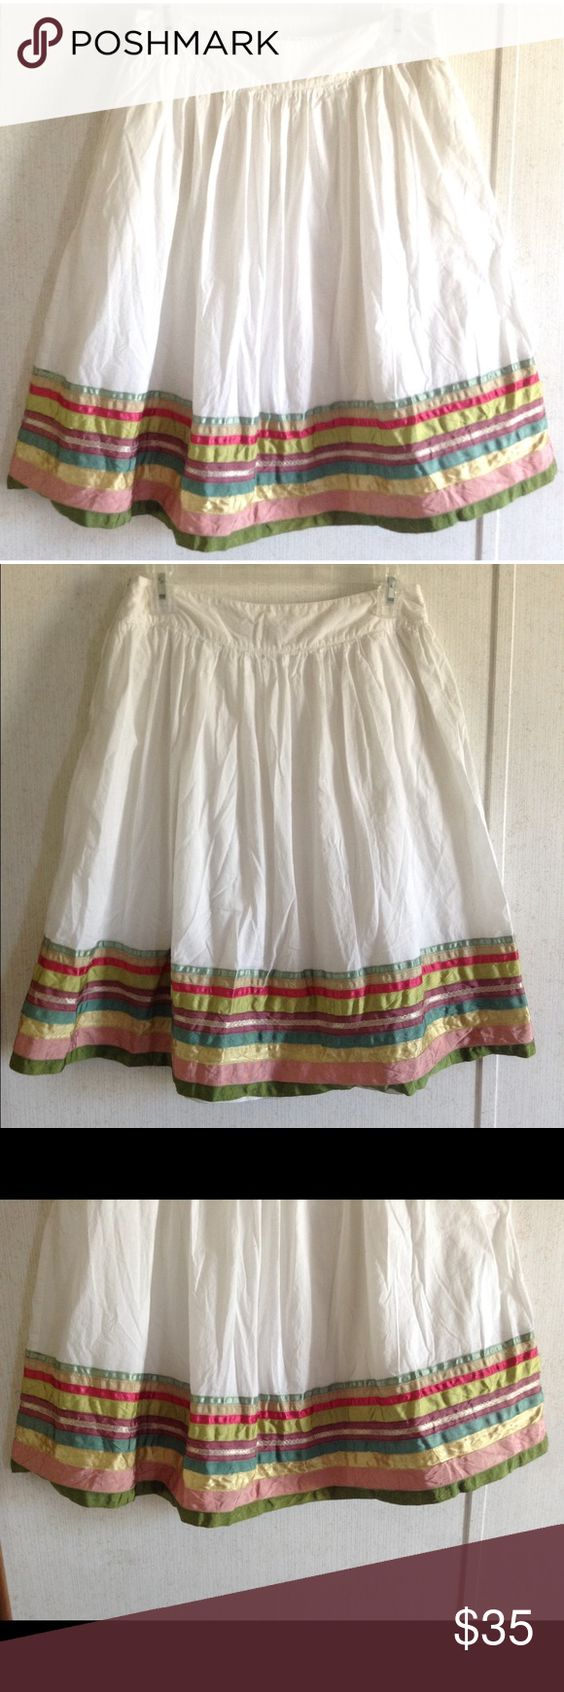 Zara Ribbon Striped Peasant Skirt Excellent condition. One small stain near the side. The bottom ribbon is a bit folded up. Super cute Zara peasant style skirt. White cotton fabric with ribbon trim hem. Lined inside. Small pleats around the waist. Wider waistband. Pocket on each side. Zips up one side. Size medium. All offers welcome Zara Skirts A-Line or Full